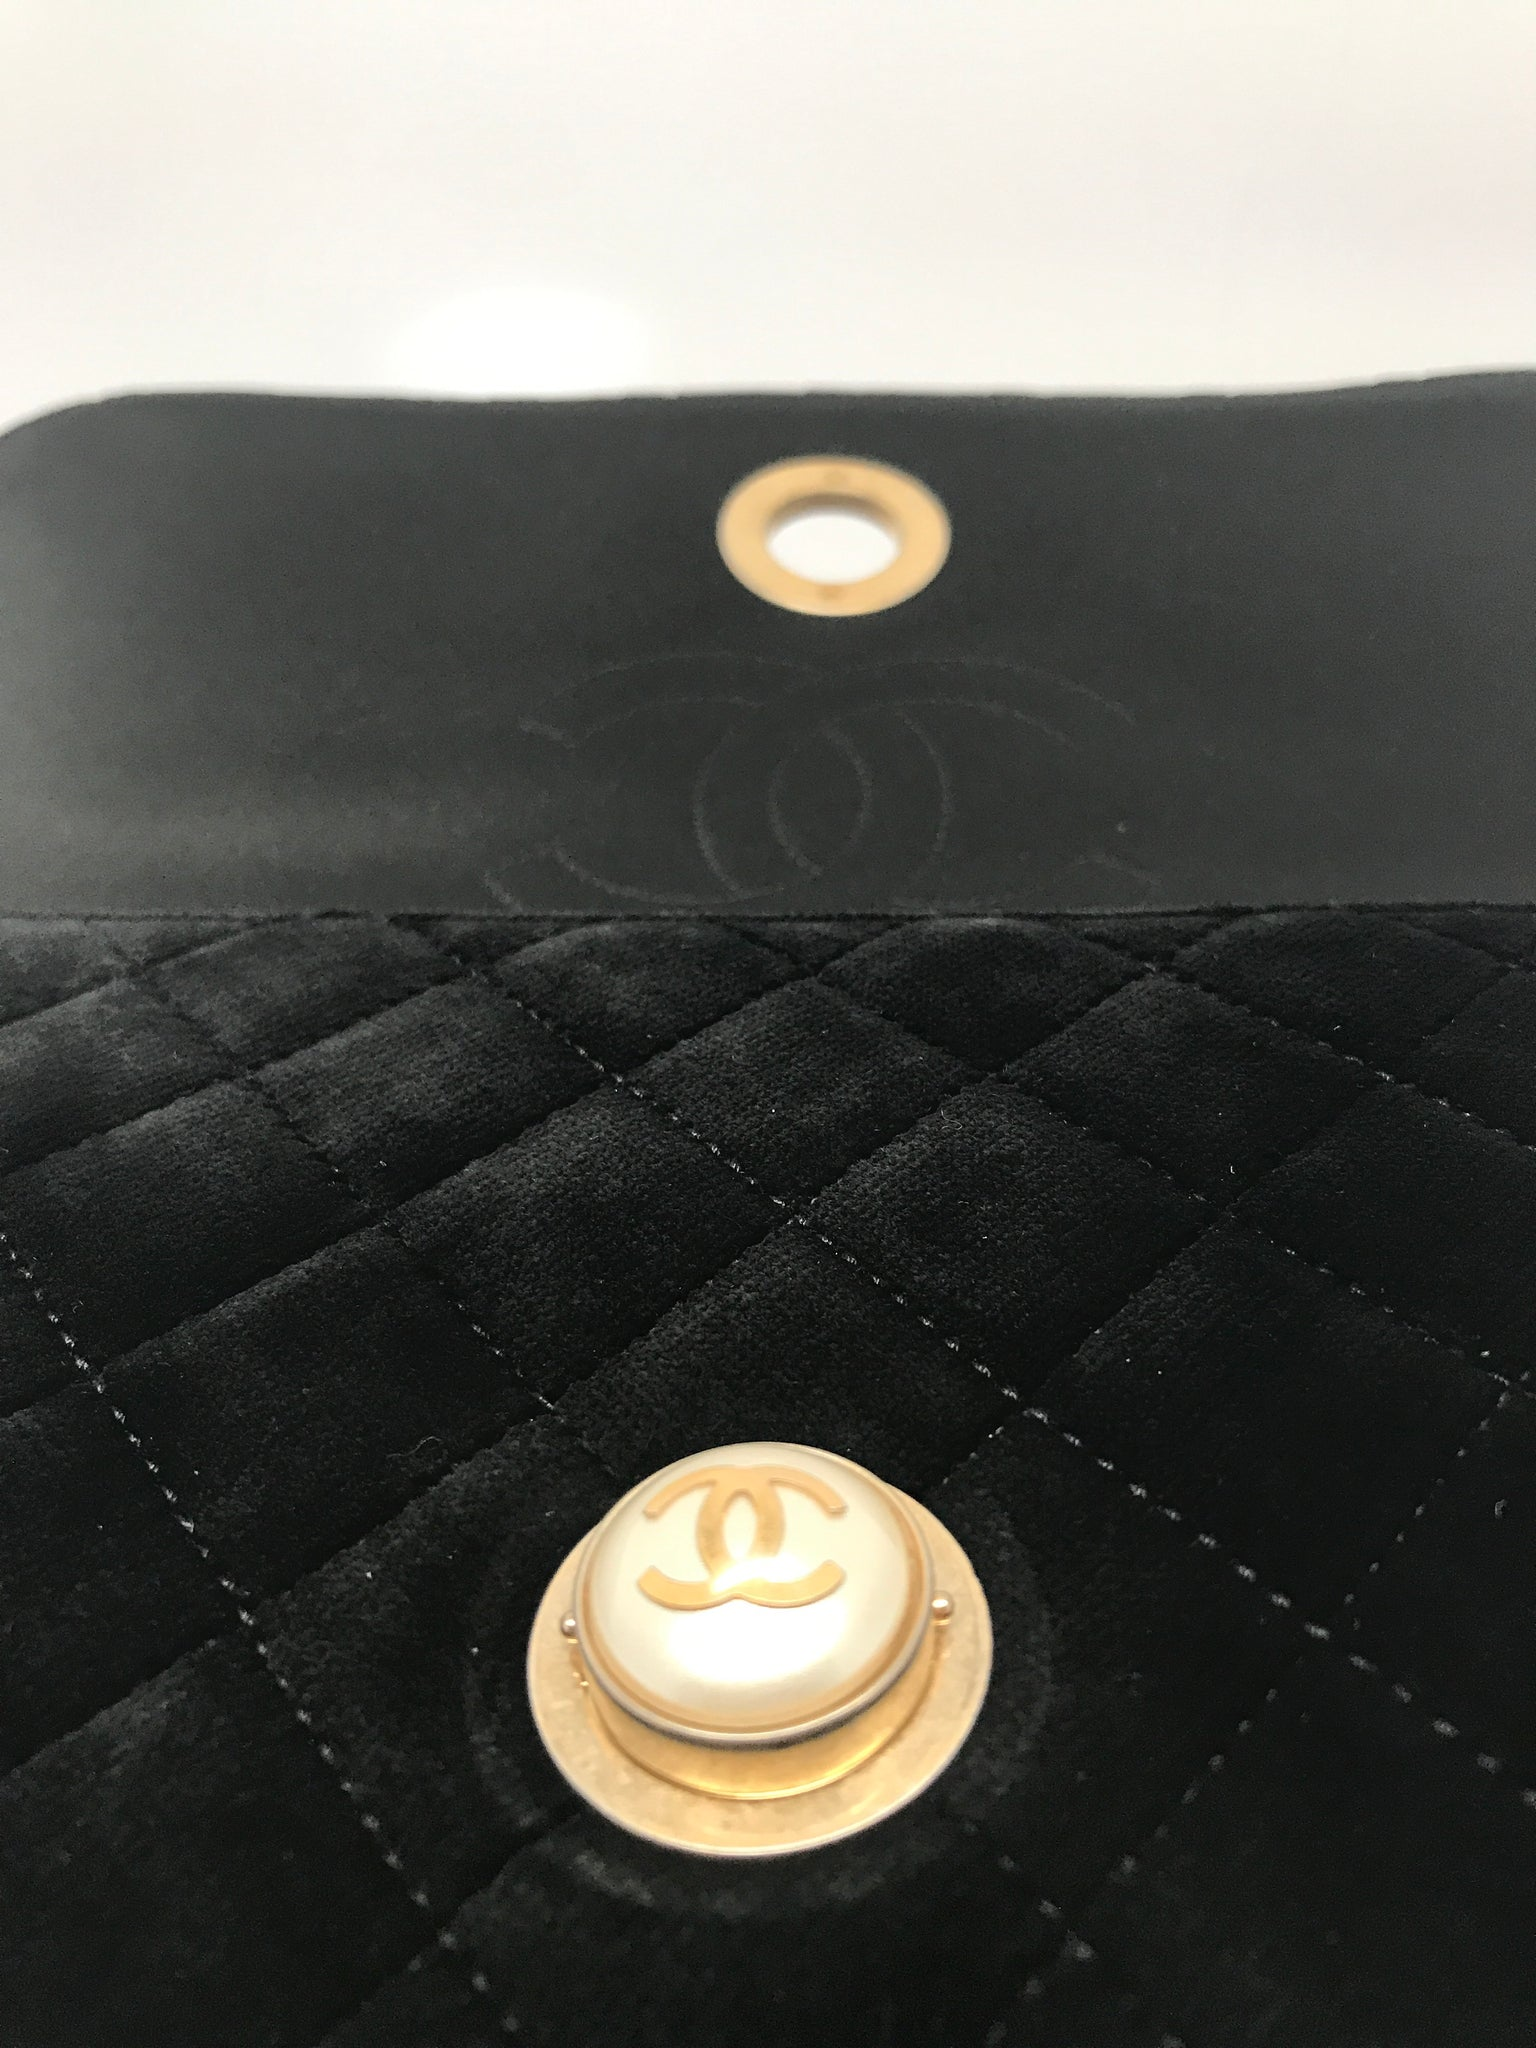 CHANEL LIMITED EDITION BLACK VELVET CLUTCH WITH GOLD-TONE METAL